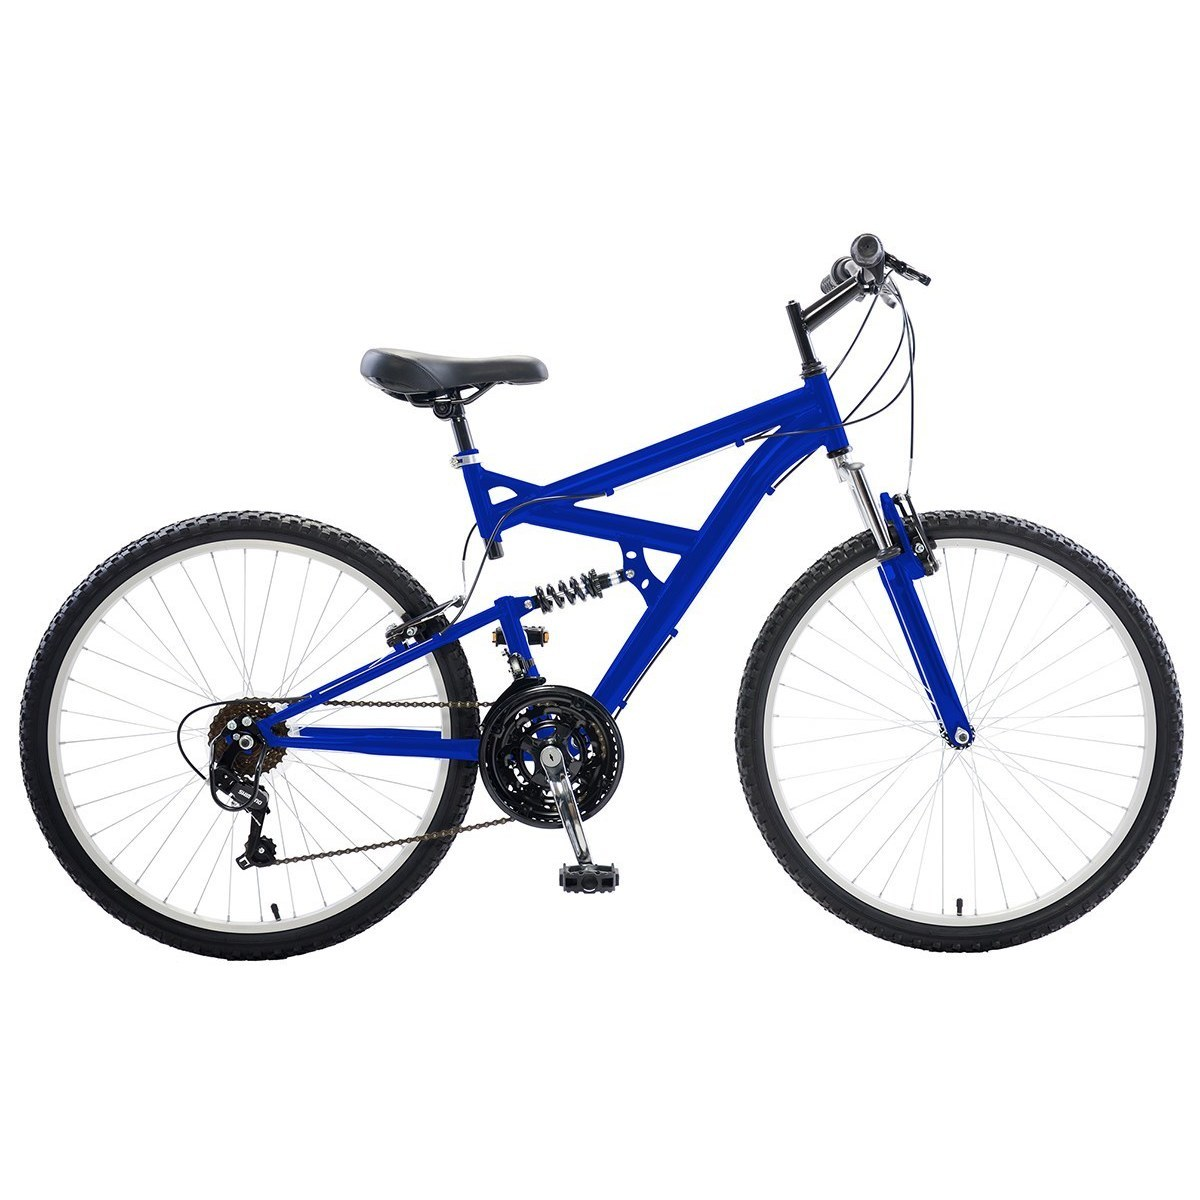 Dual Suspension Mountain Bike >> Cycle Force Dual Suspension 26 Inch Wheels 18 Inch Frame Men S